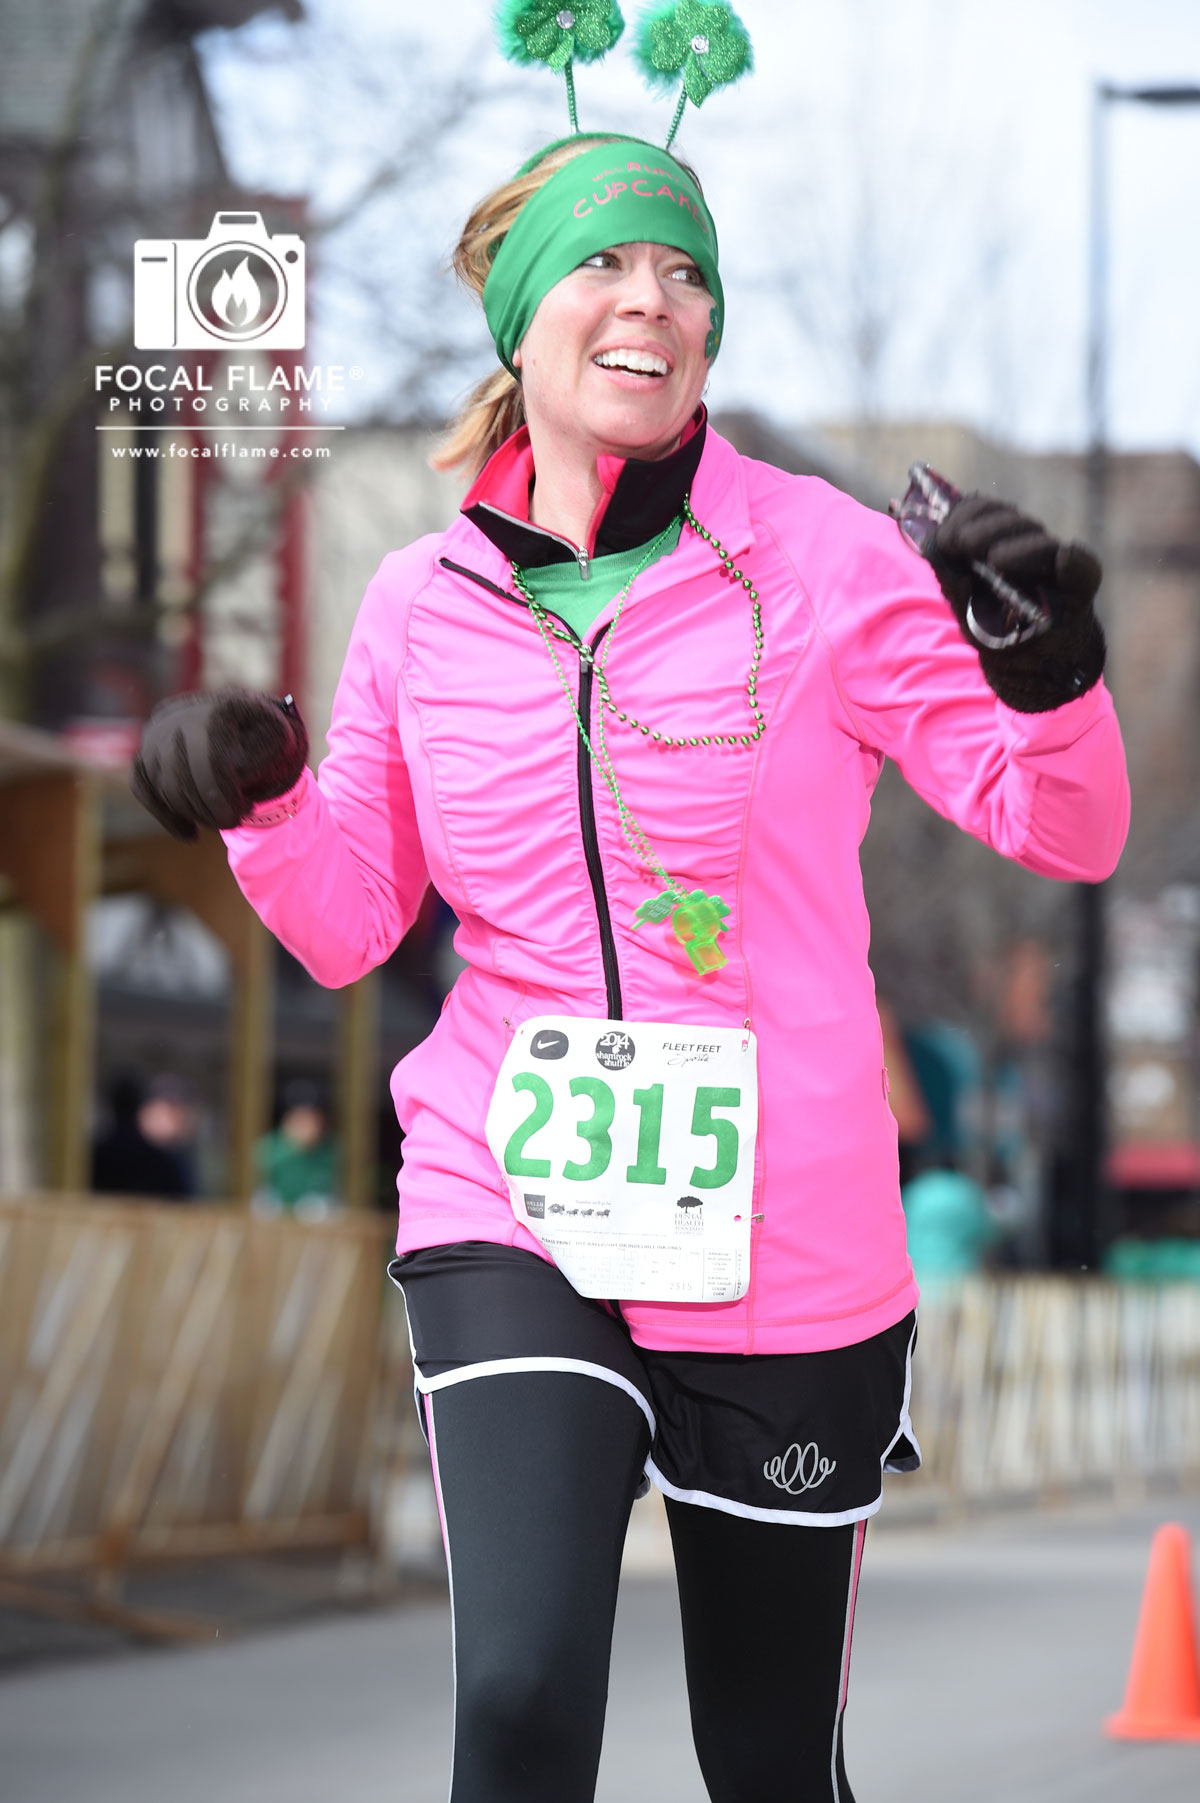 Krissy Schintgen rocks the 2014 Madison Shamrock Shuffle, sporting a brilliant smile despite high winds and cold temperatures. Photo credit: Clint Thayer, Focal Flame Photography